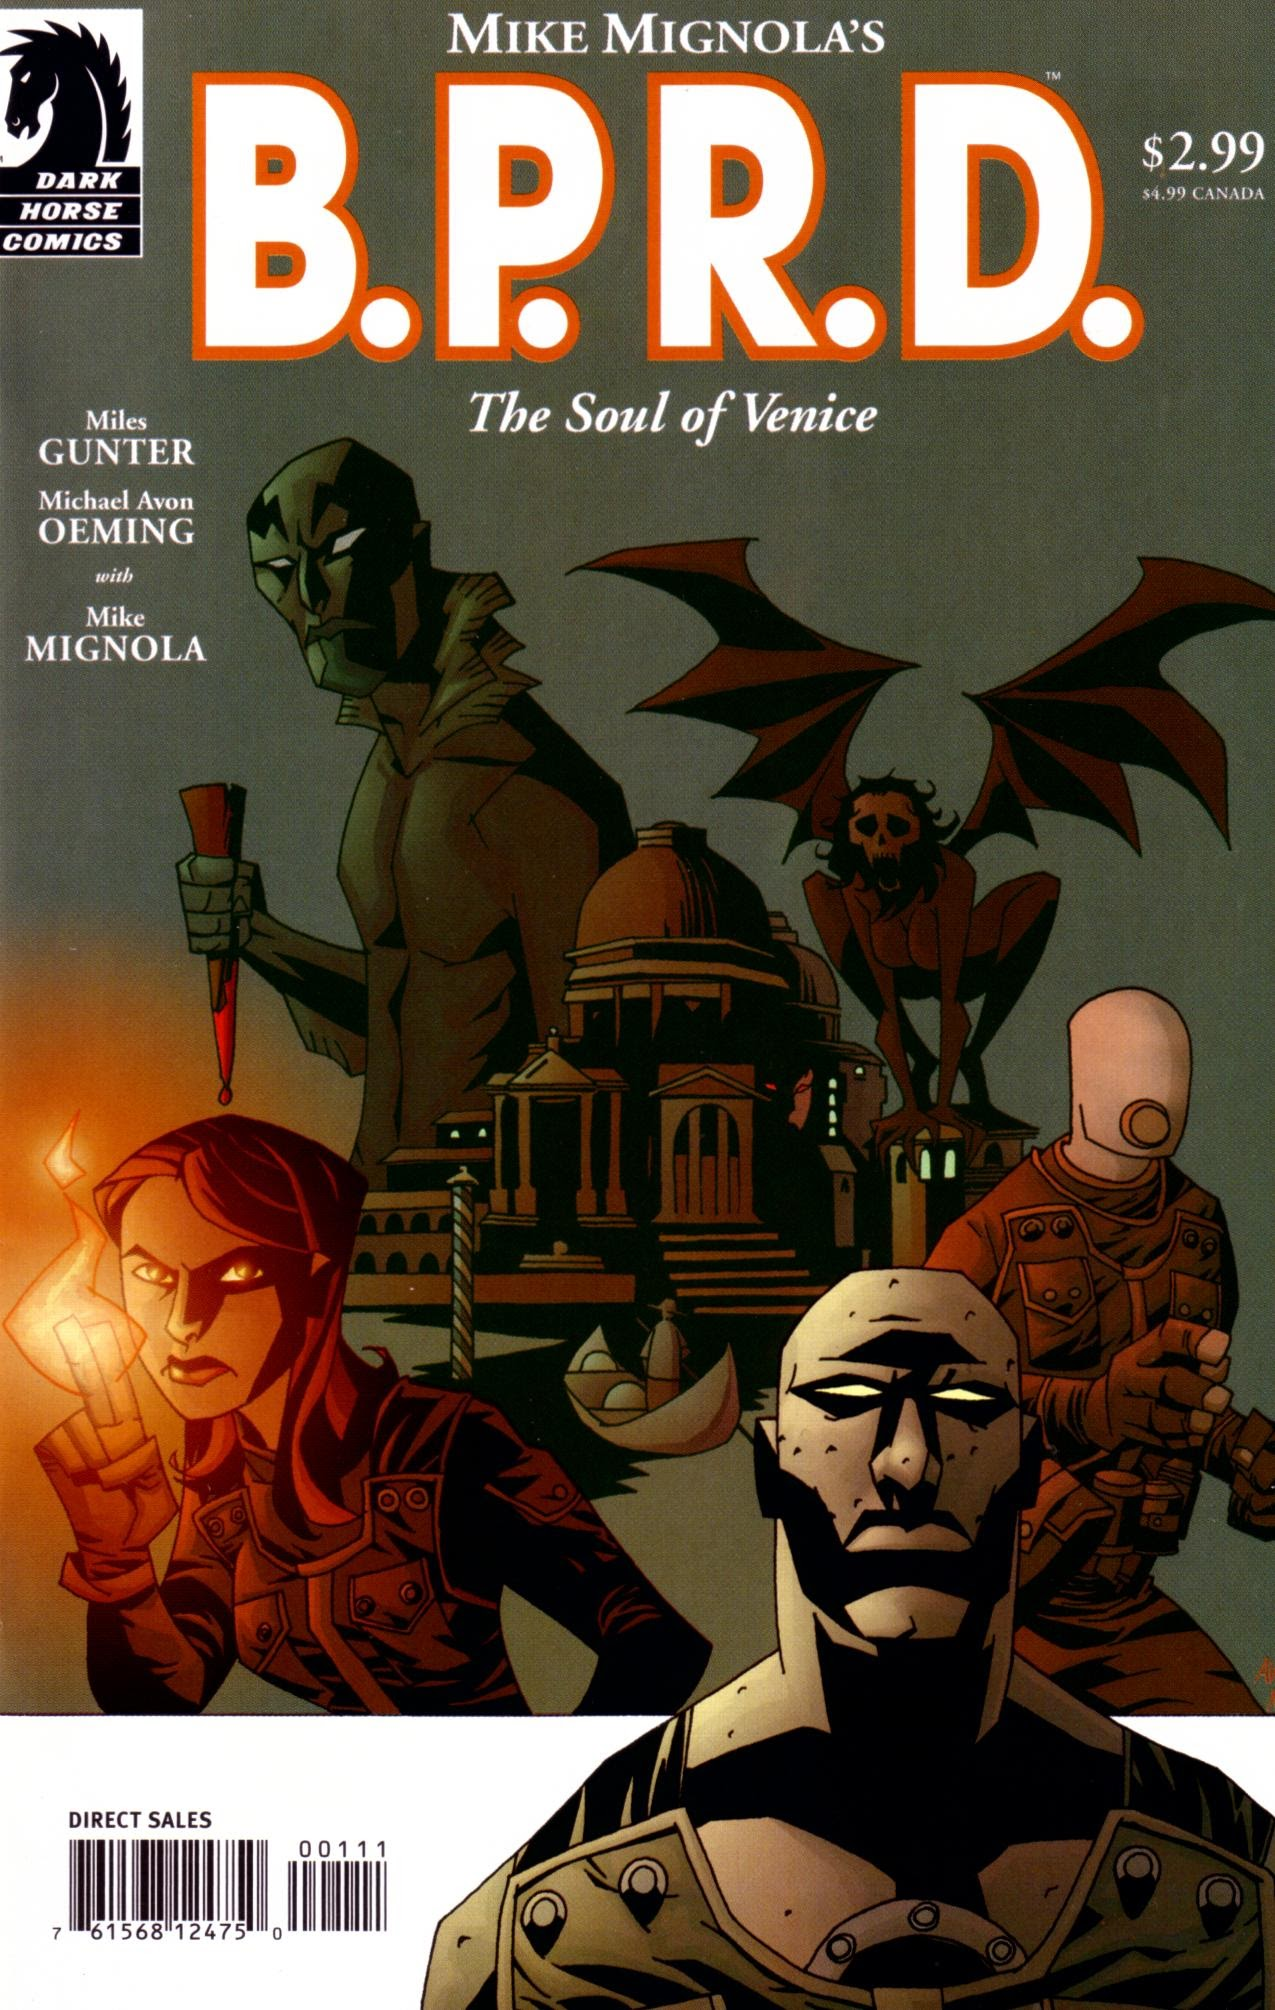 B.P.R.D.: The Soul of Venice Full Page 1